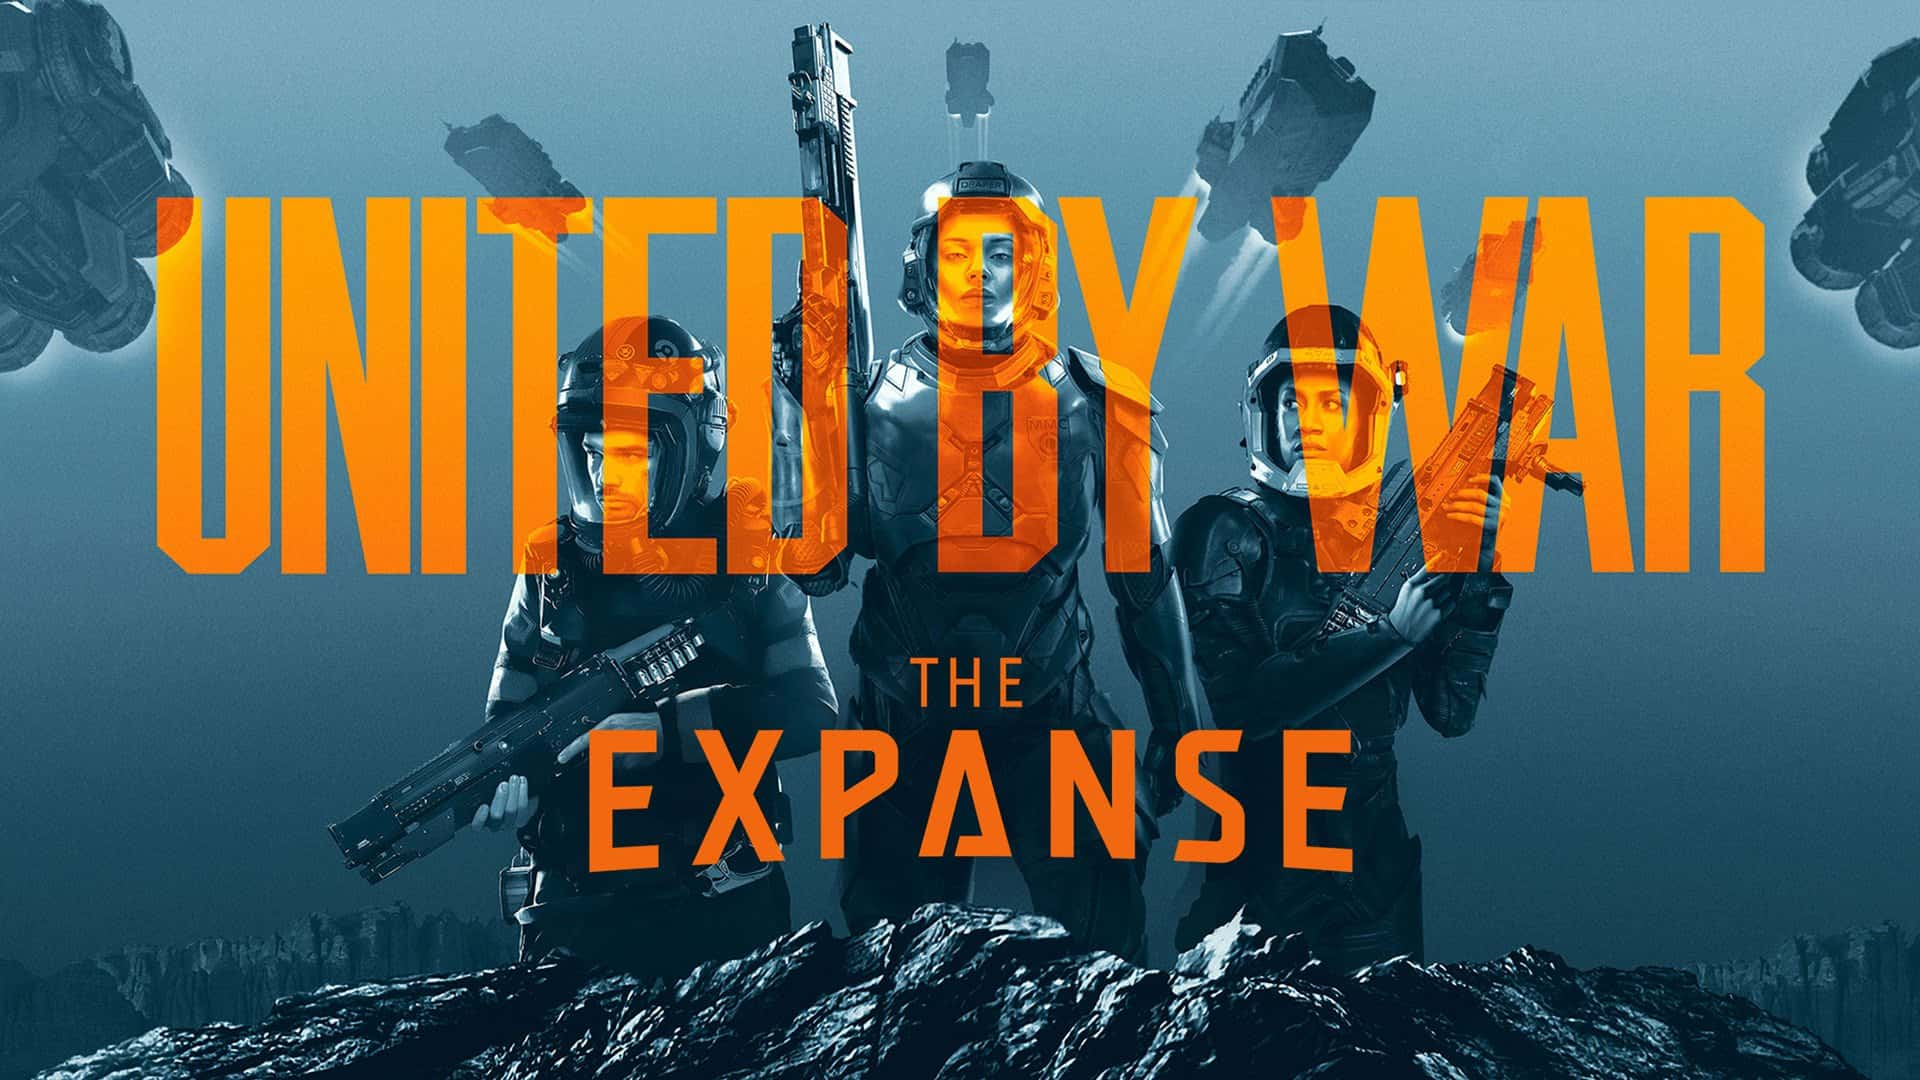 The Expanse Season 3